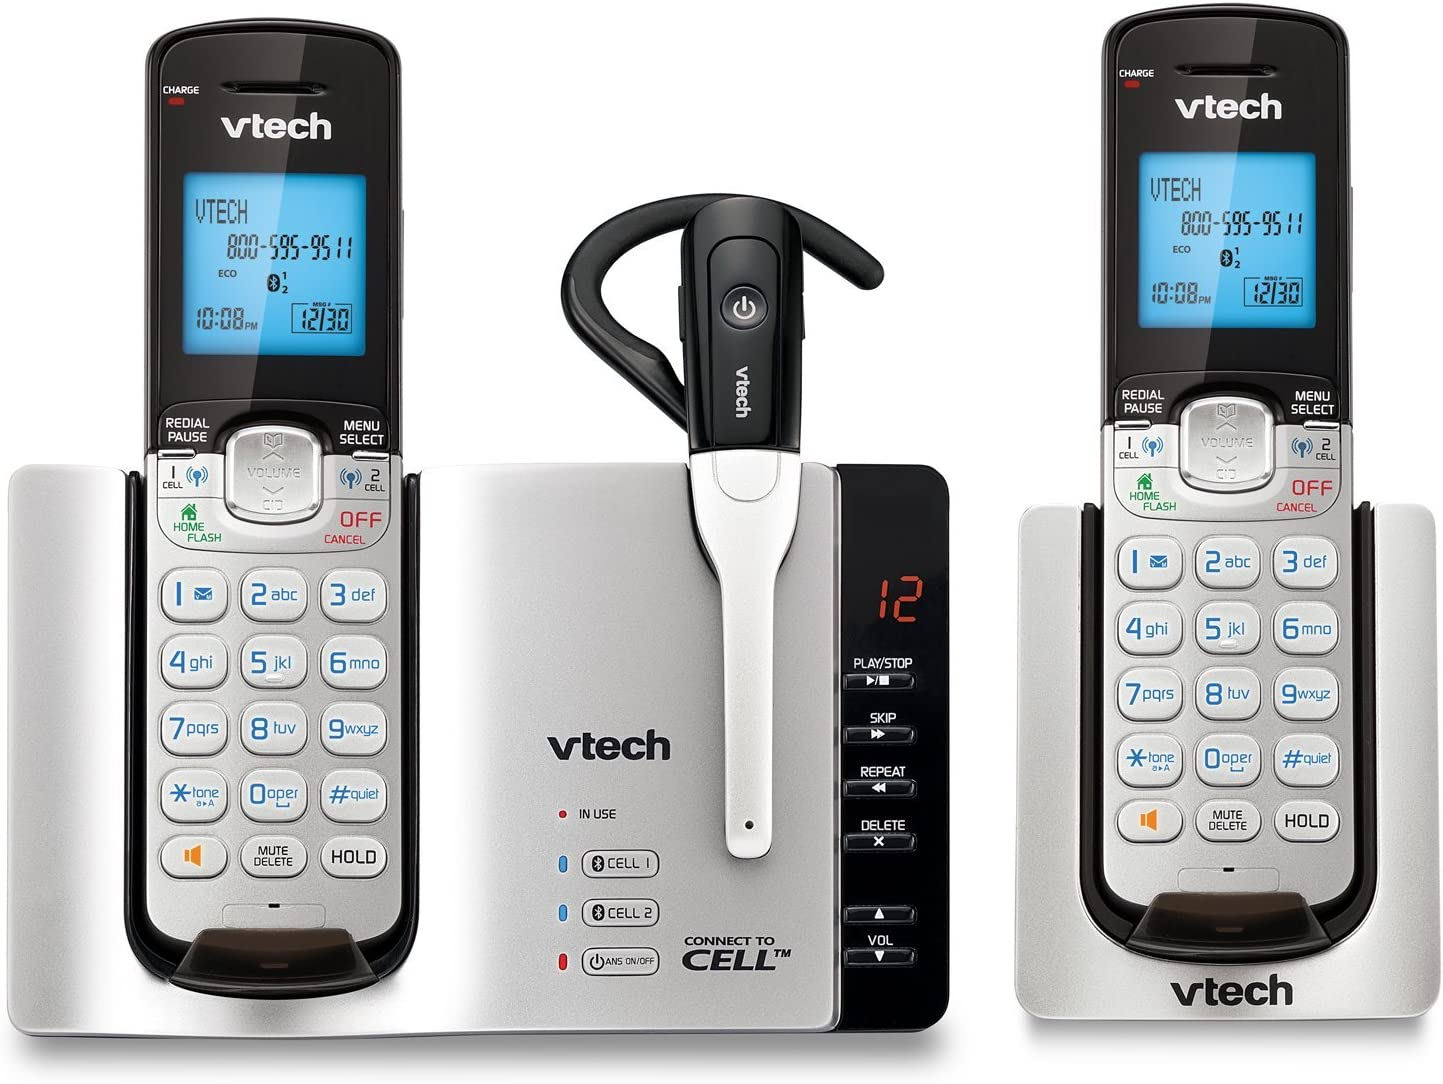 VTech DS6671-3 DECT 6.0 Expandable Cordless Phone with Bluetooth Connect Answering System, Silver/Black with 2 Handsets and 1 Cordless Headset (Renewed)